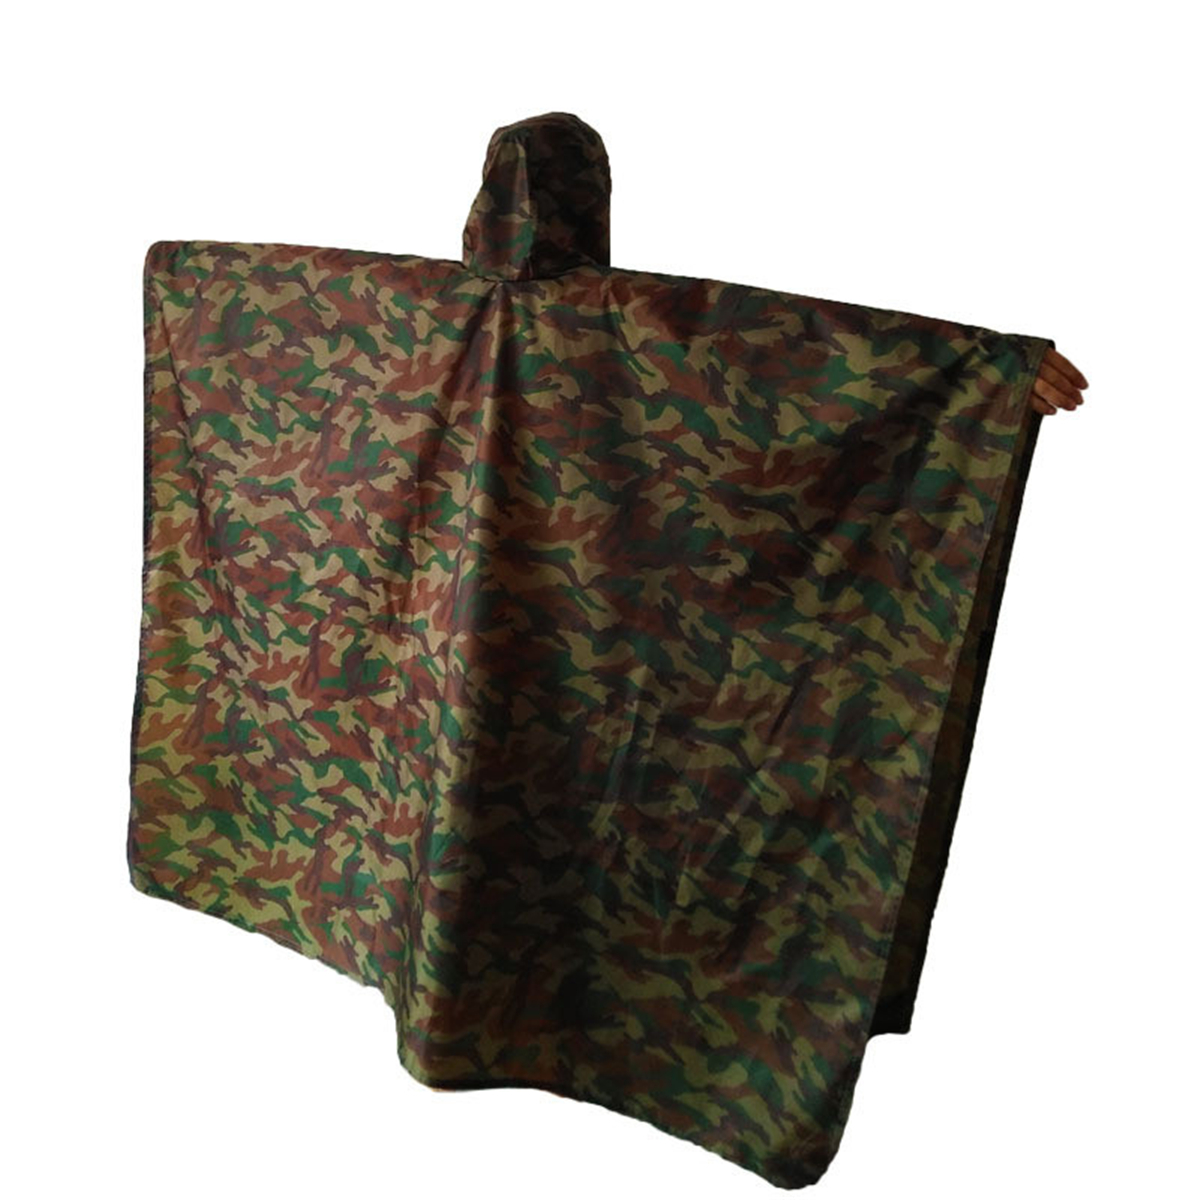 3 In1 Raincoat Waterproof Awning Camping Emergency Camouflage Poncho Rainwear